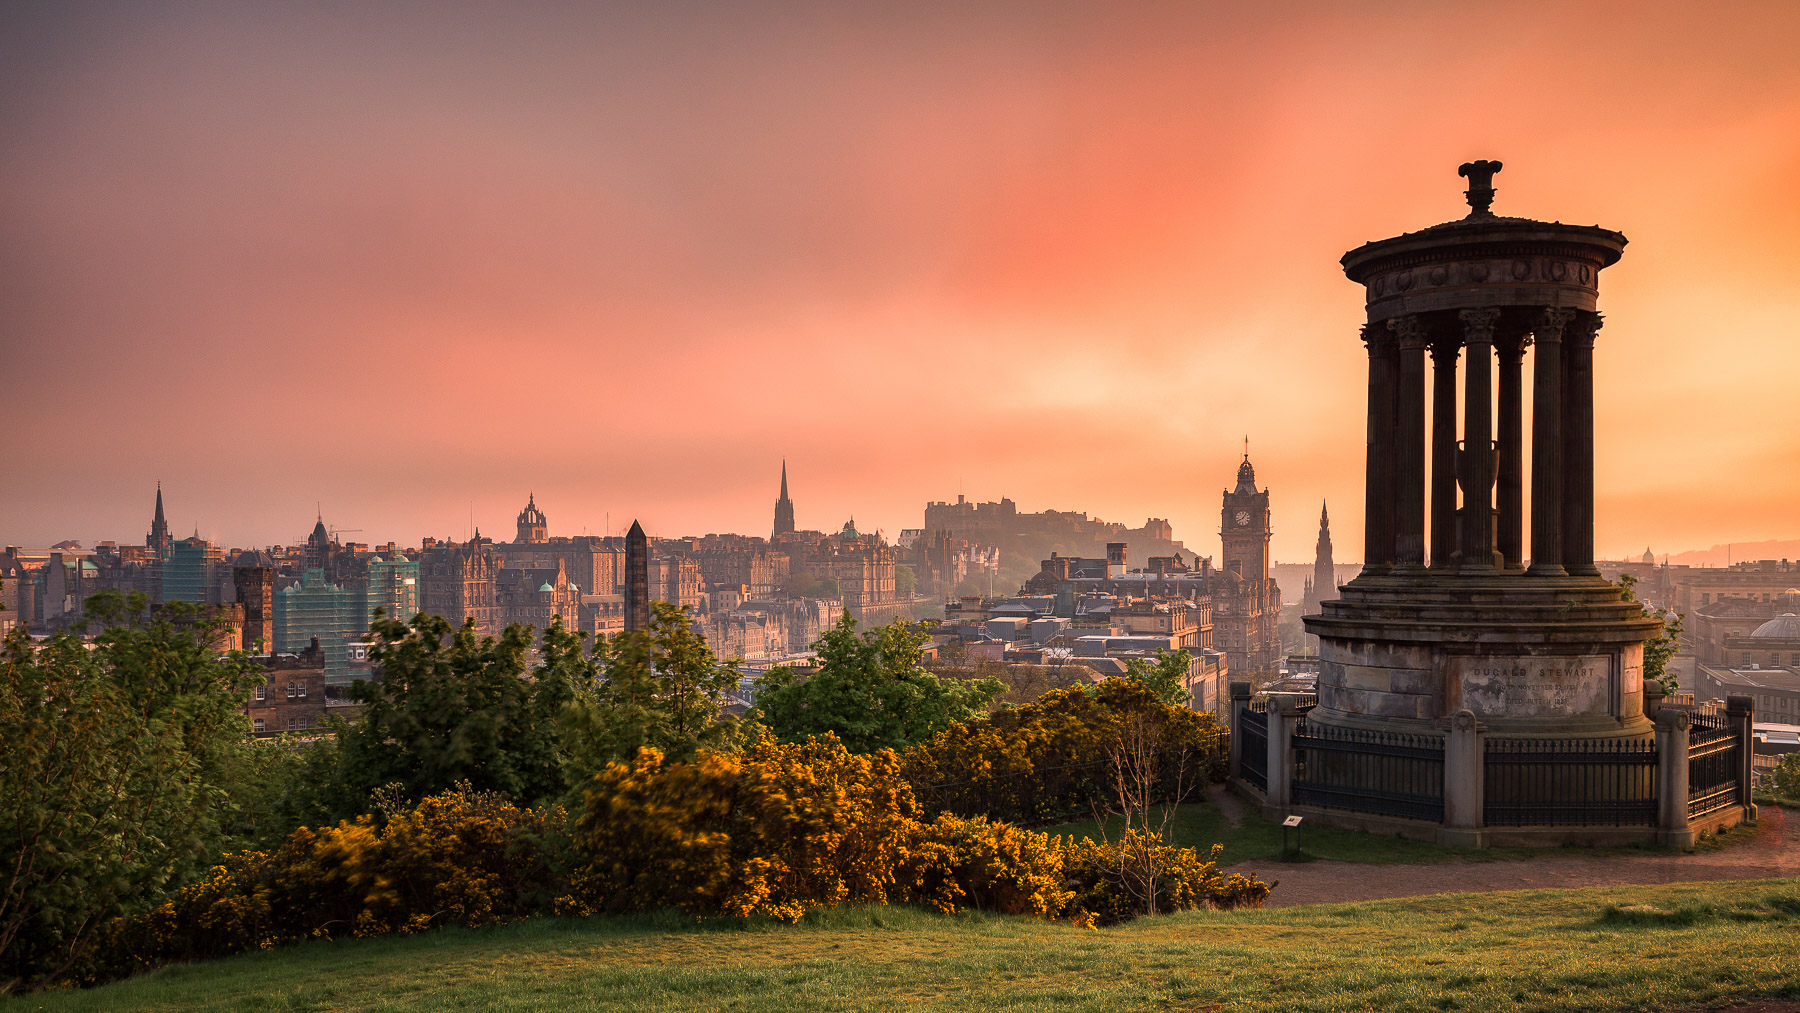 View over Edinburgh from Calton Hill, United Kingdom